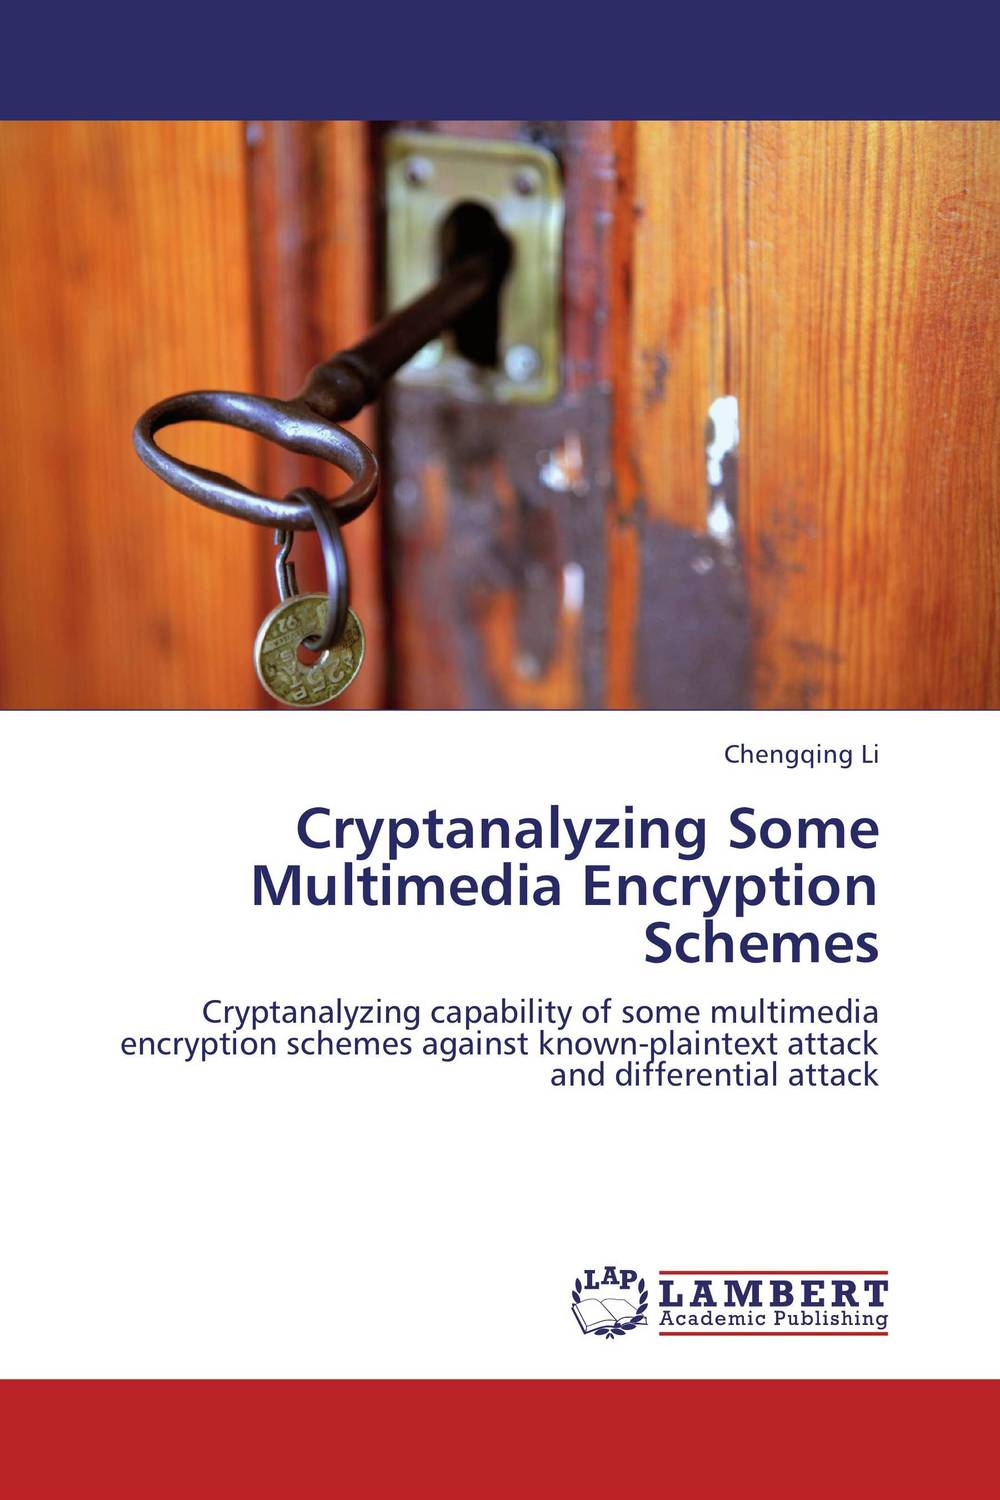 Cryptanalyzing Some Multimedia Encryption Schemes belousov a security features of banknotes and other documents methods of authentication manual денежные билеты бланки ценных бумаг и документов